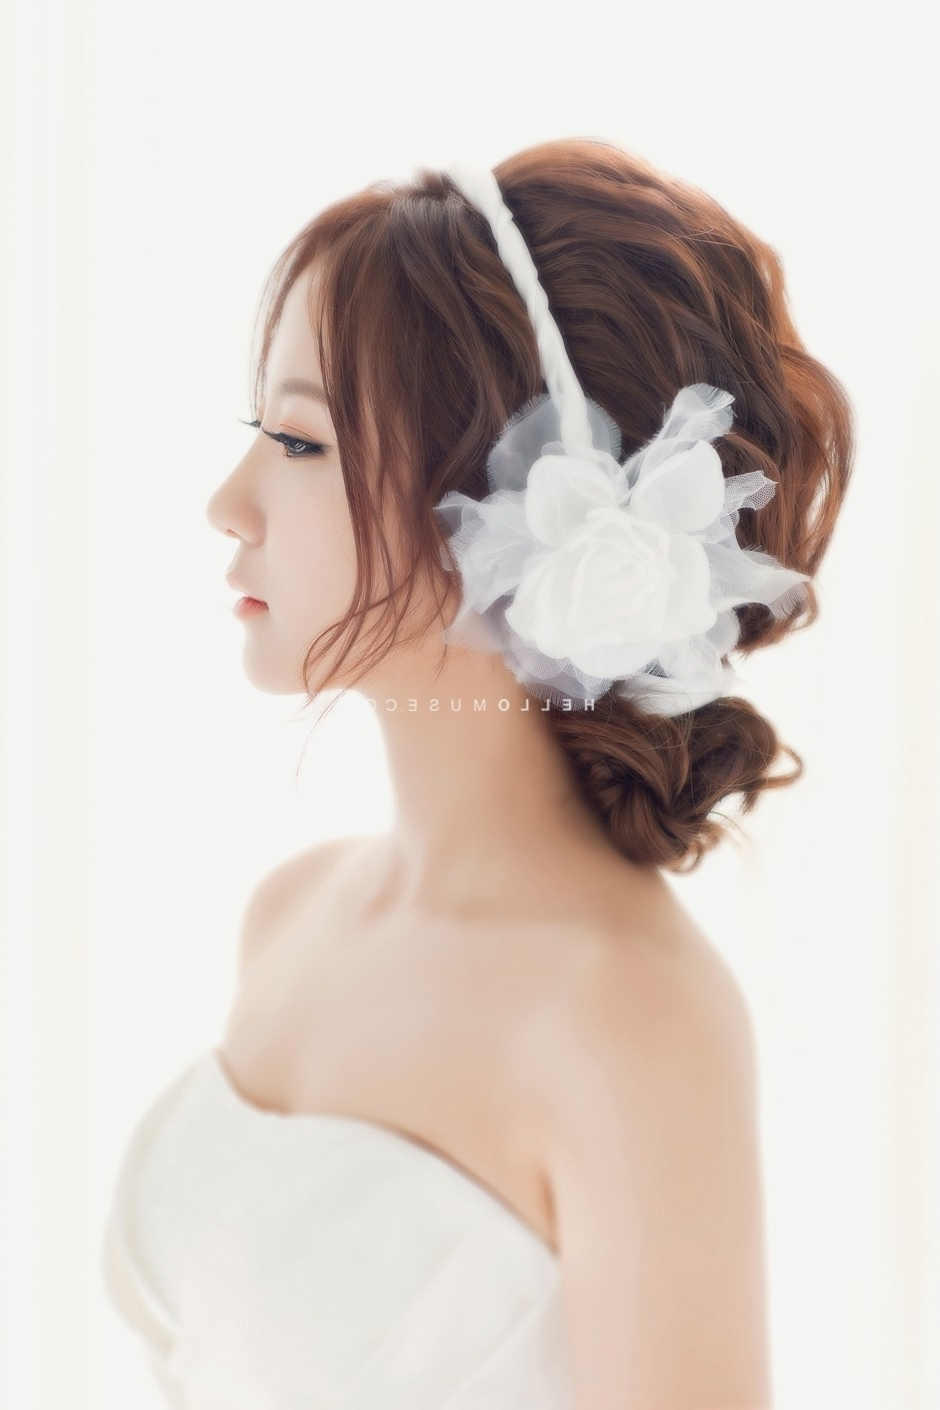 Well Known Korean Wedding Hairstyles For Long Hair Pertaining To Wedding Hairstyles Amazing Korean Hairstyle Ideas At 50th (View 15 of 15)